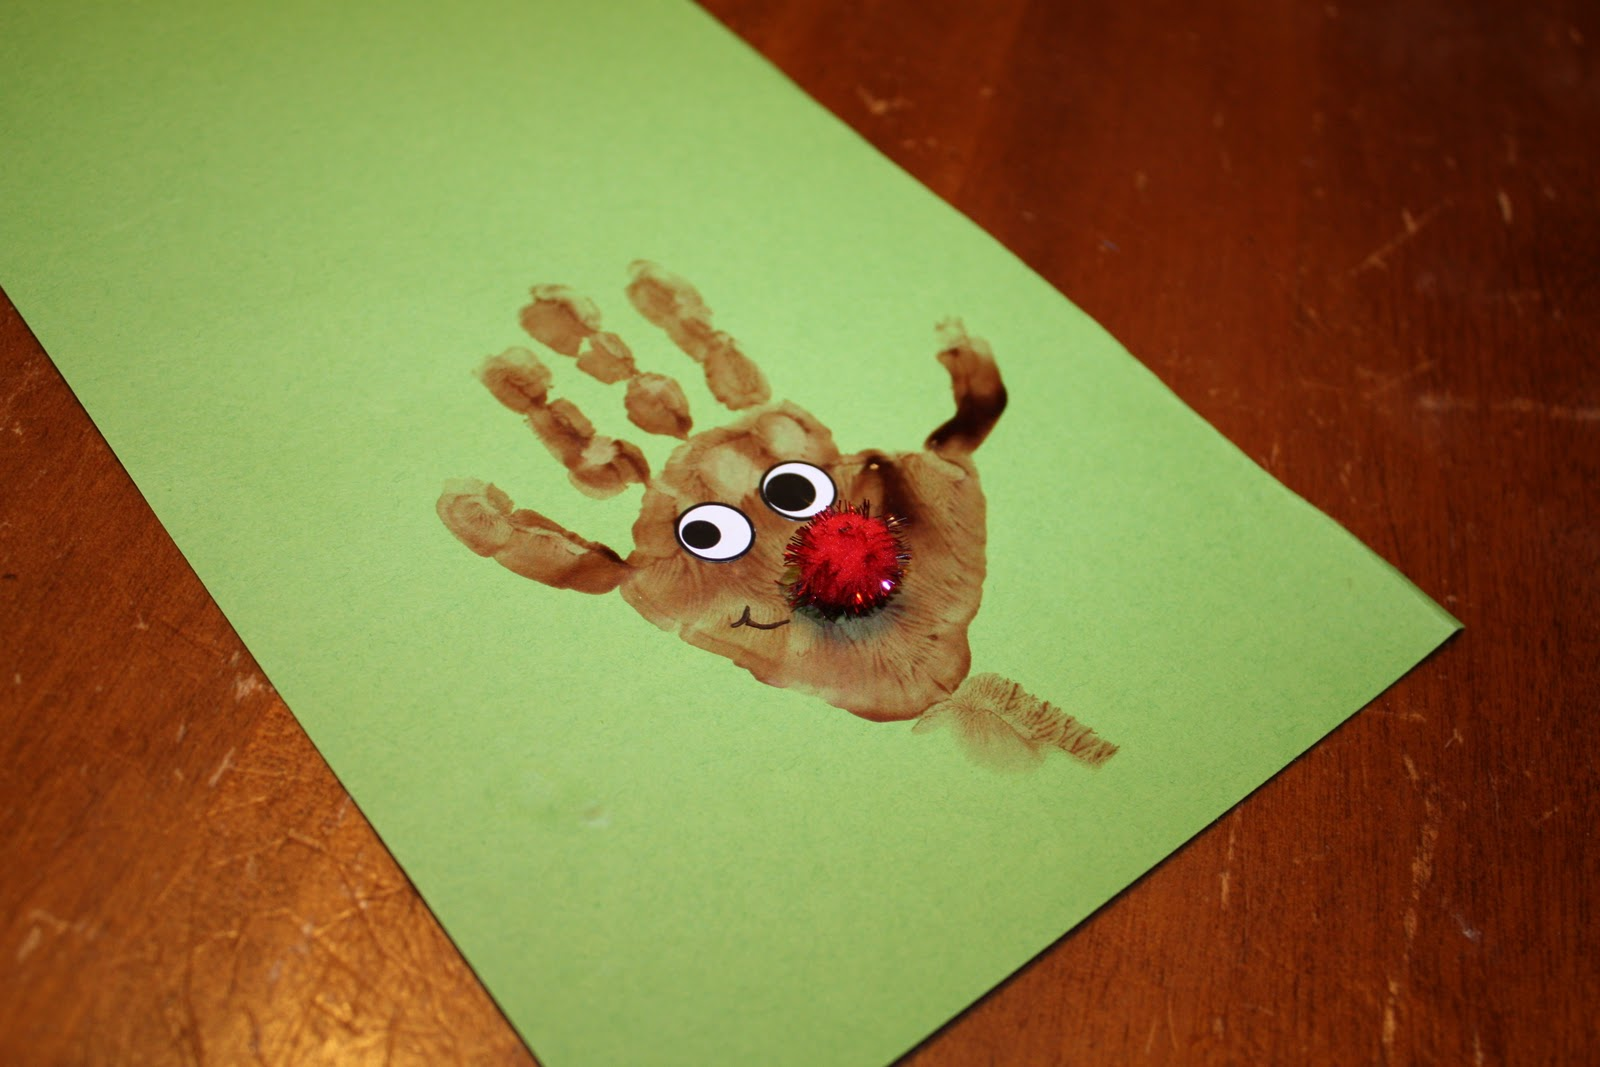 Christmas Card Crafts. Christmas Card Making Ideas On Pinterest. View ...